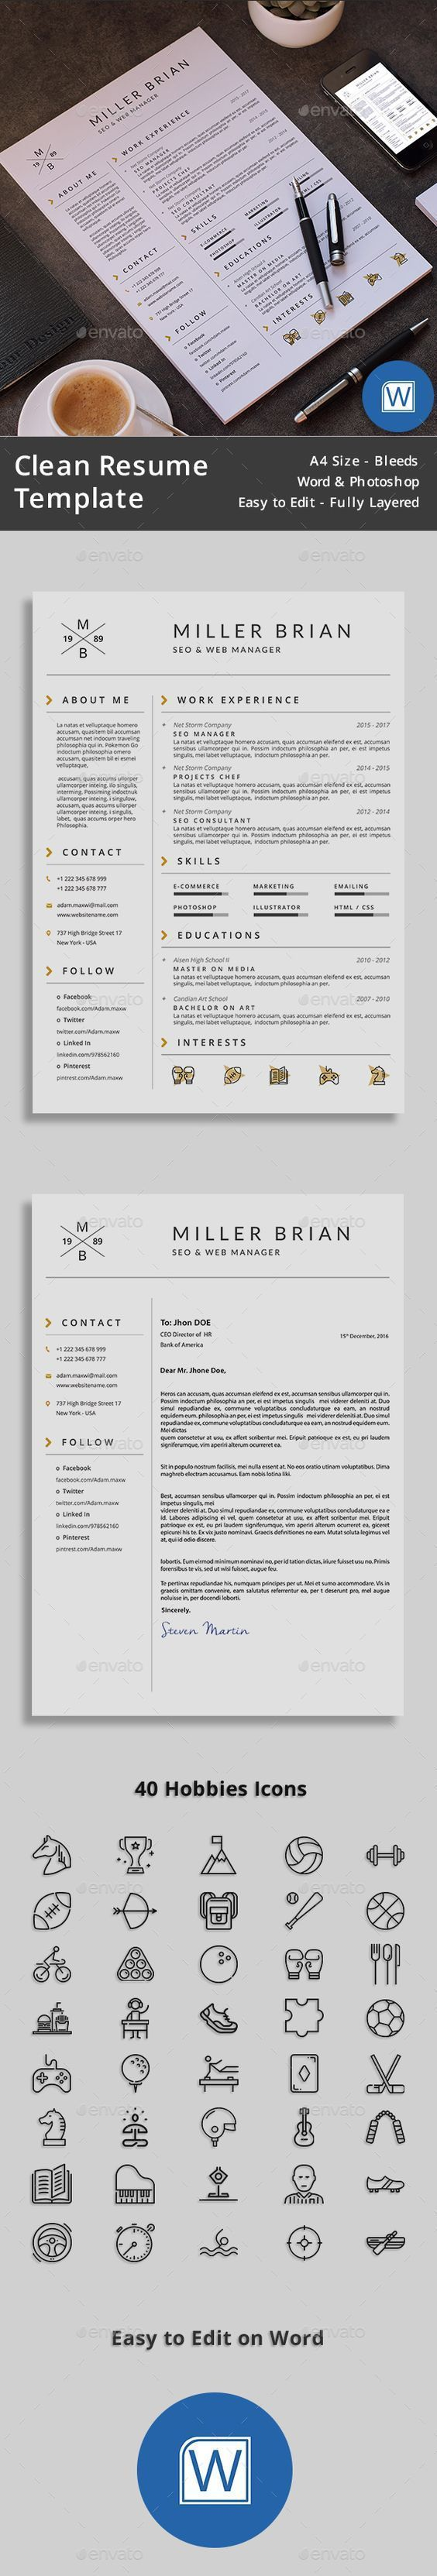 how to format a friendly letter%0A     Resume Template for MS Word   CV Template for word   Resume template  for word       Editable   Instant Digital Download   US Letter  u     A  size  format